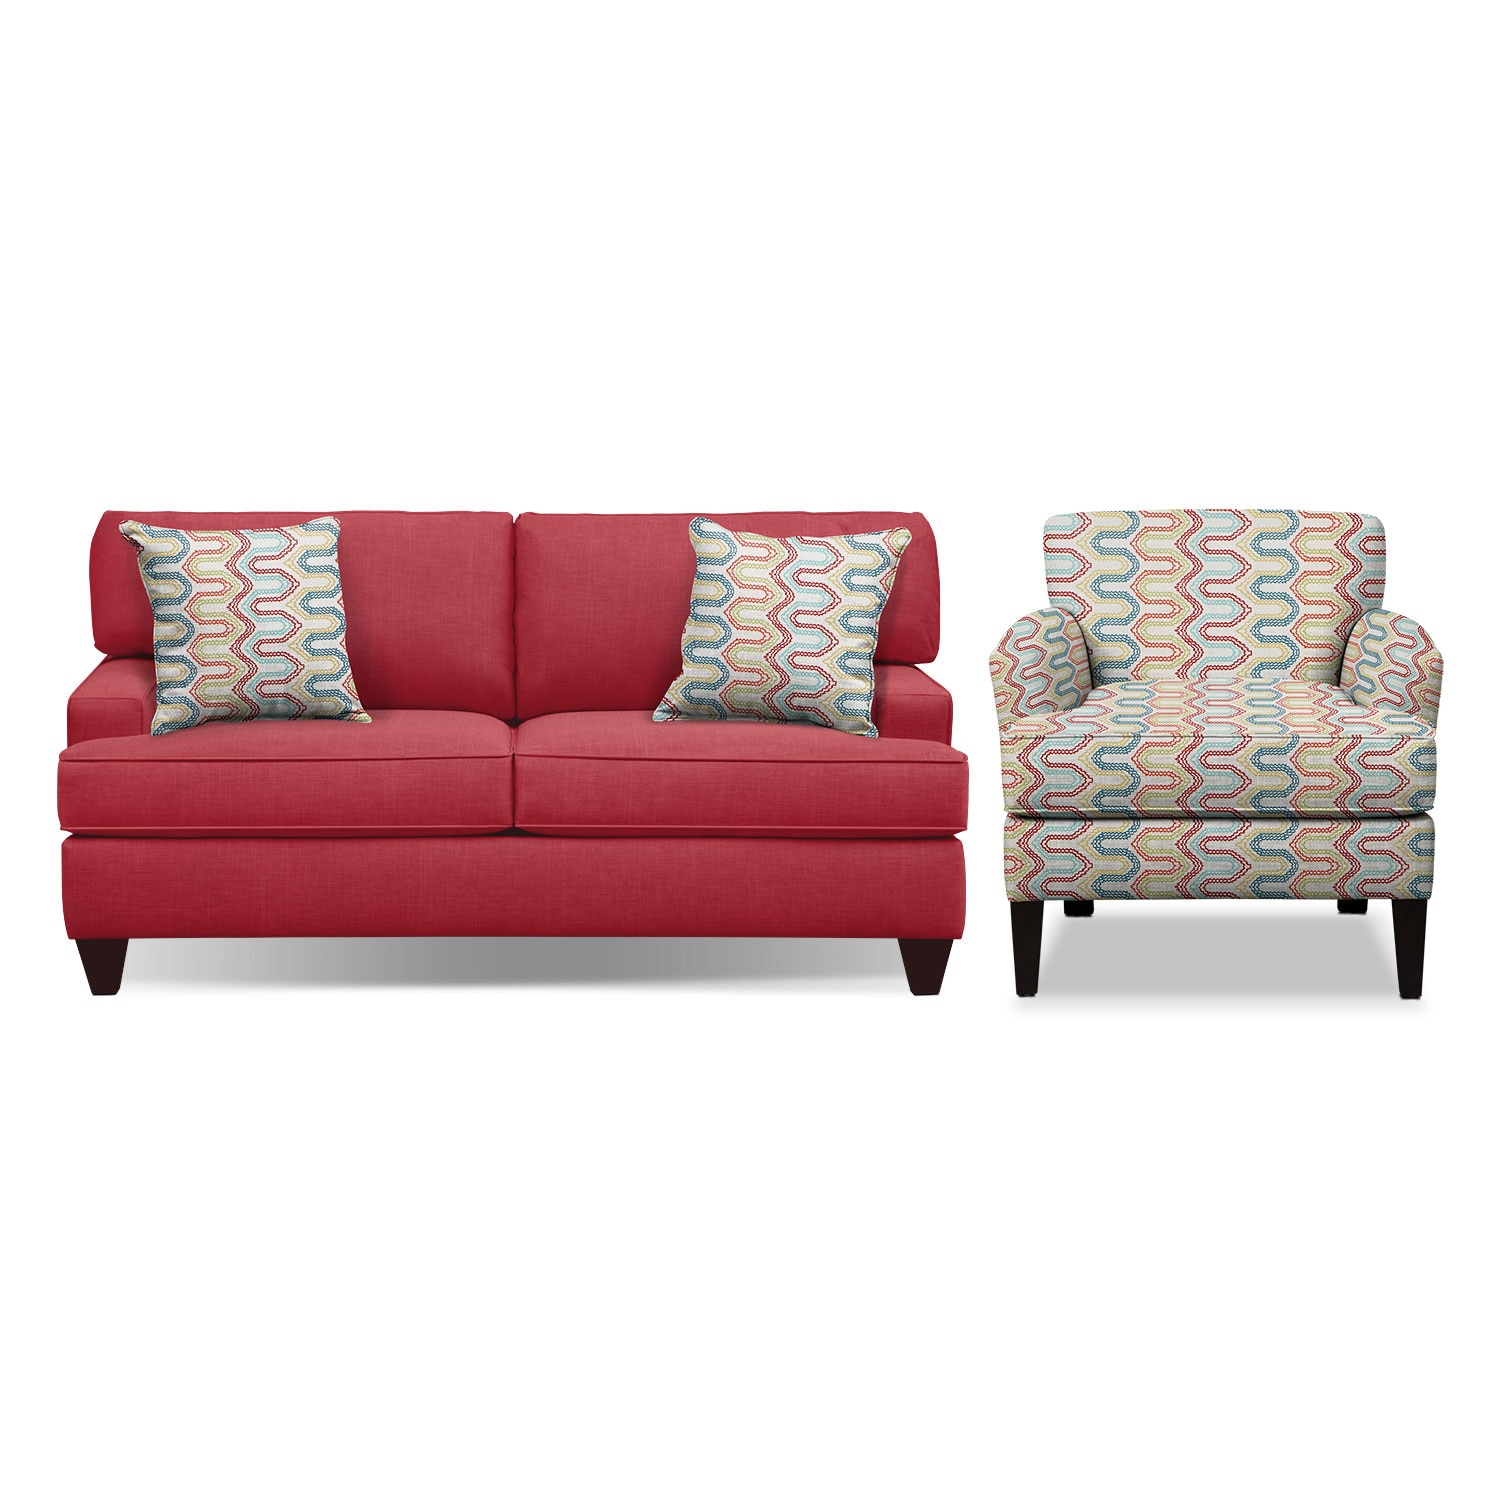 "Living Room Furniture - Conner Red 75"" Sofa and Accent Chair Set"